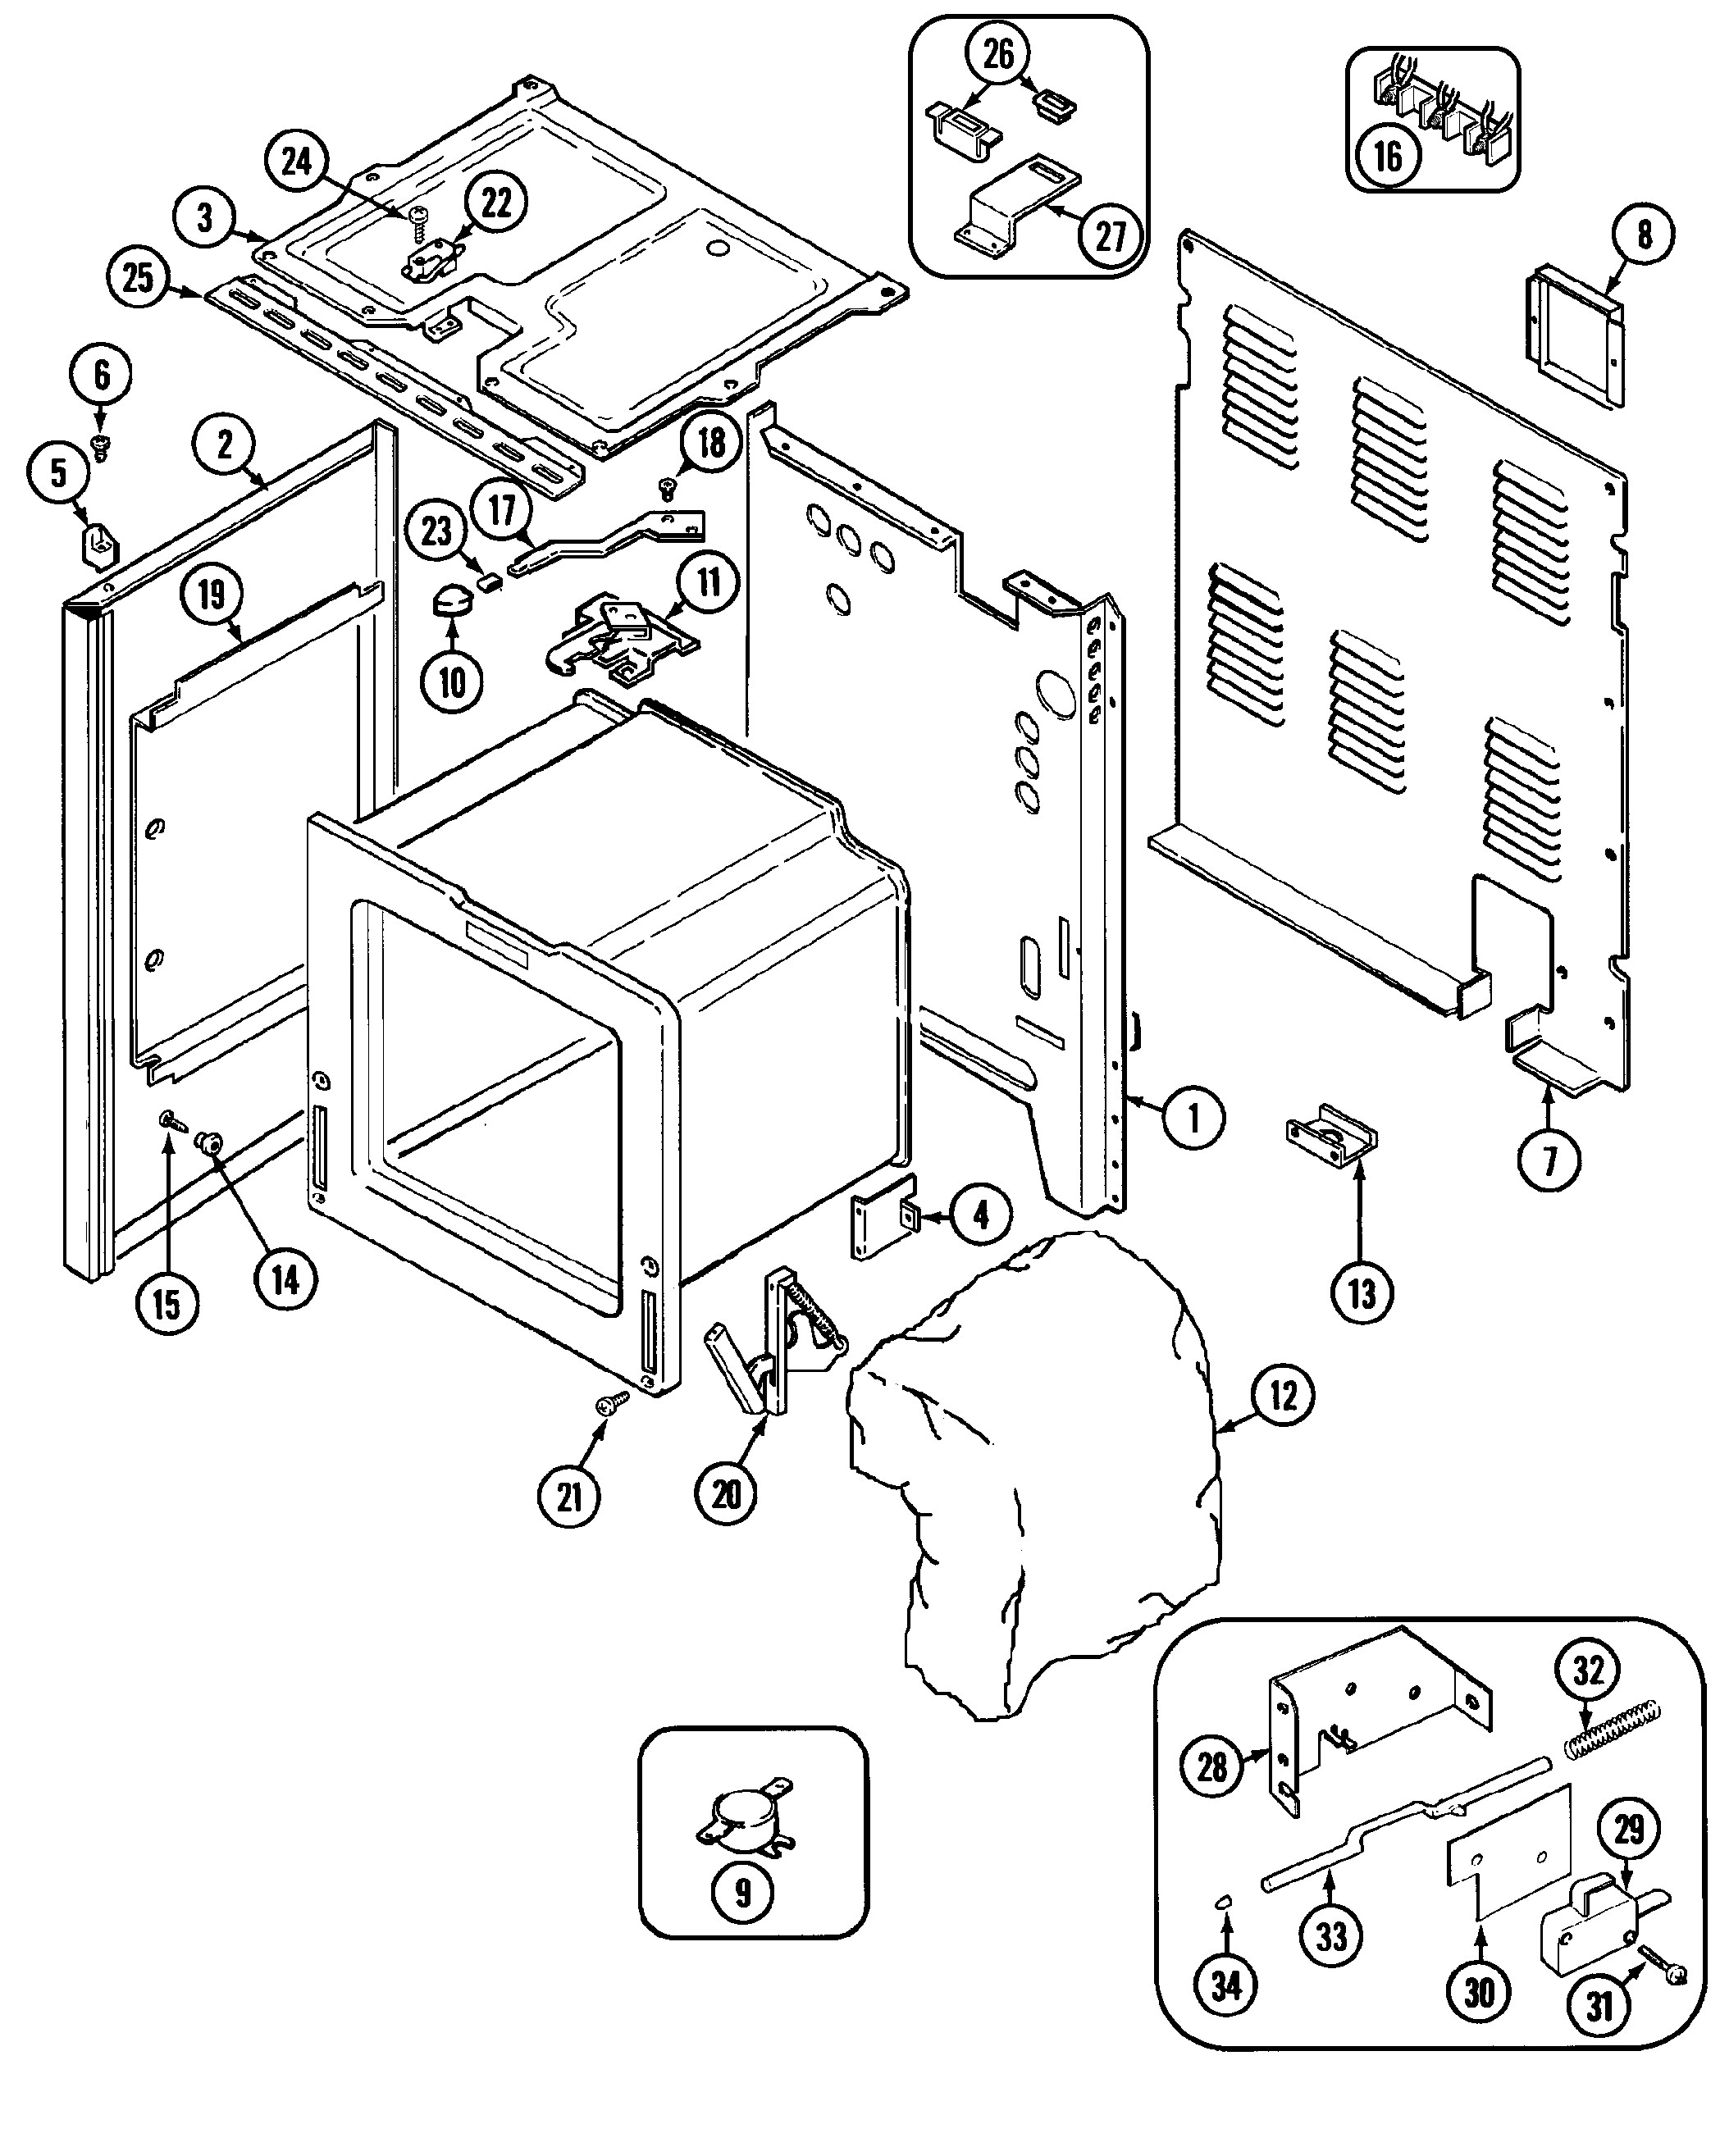 Bosch Dryer Parts Diagram Maytag Cre9600 Timer Stove Clocks and Appliance Timers Of Bosch Dryer Parts Diagram